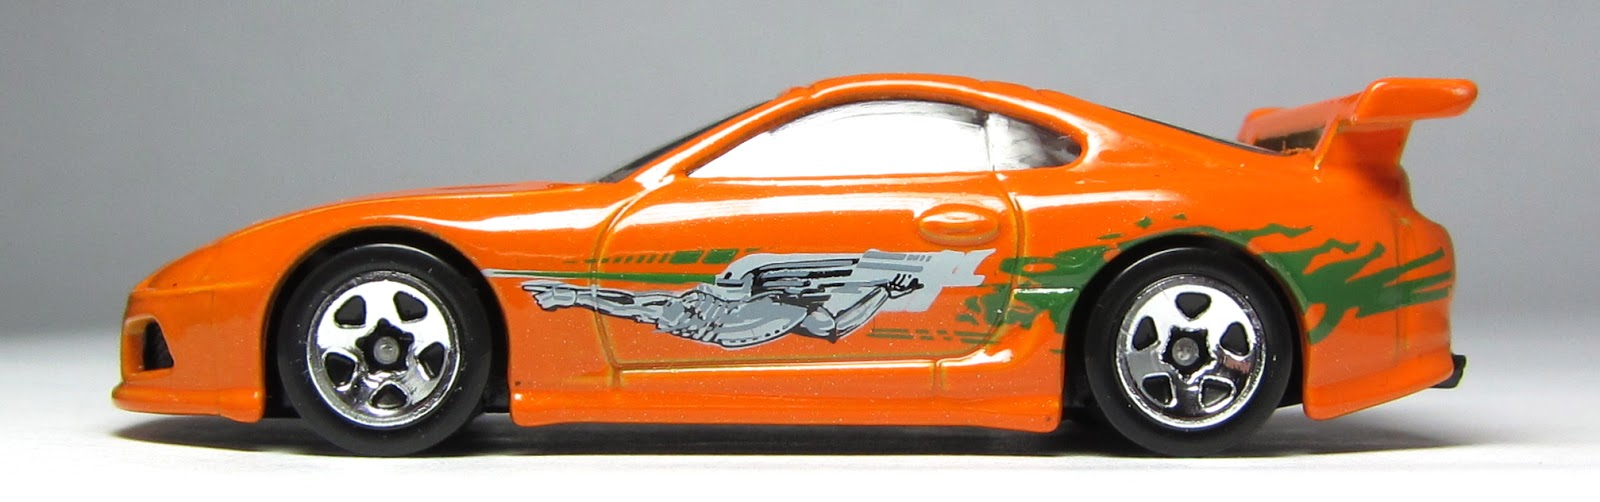 the Lamley Group: First Look: Hot Wheels Toyota Supra.